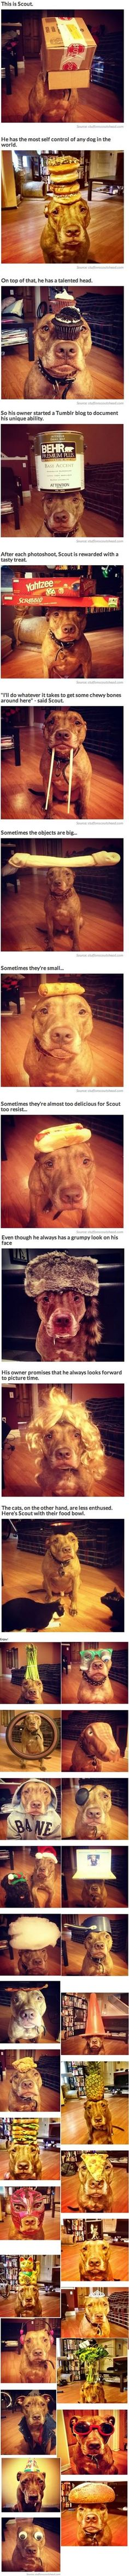 This dog can balance anything on his noggin!